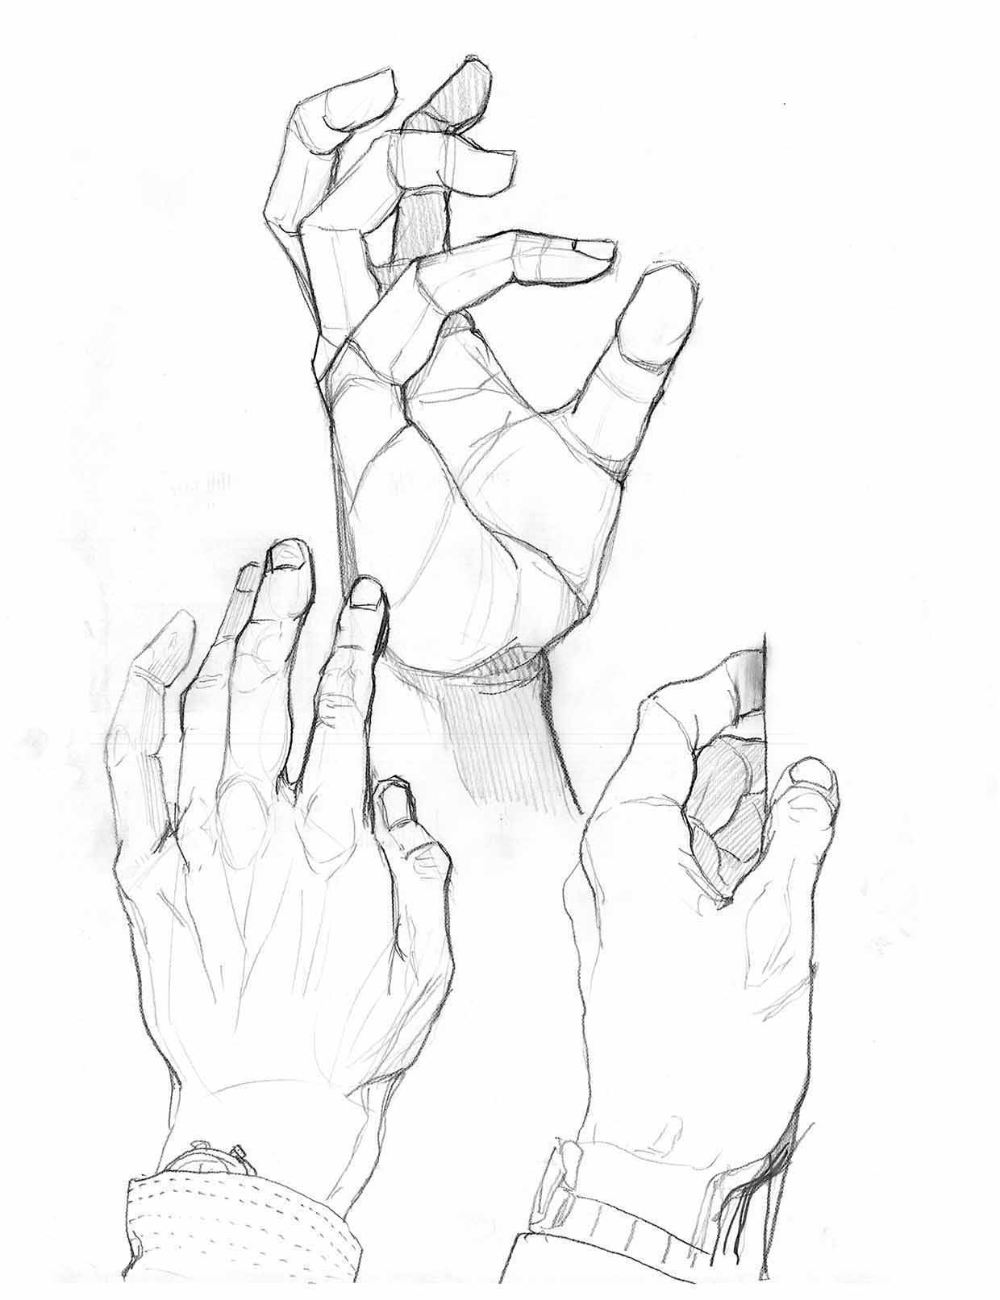 Artstation Hand Drawing Pencil Seungyeop Lee How To Draw Hands Hand Drawing Reference Hand Reference